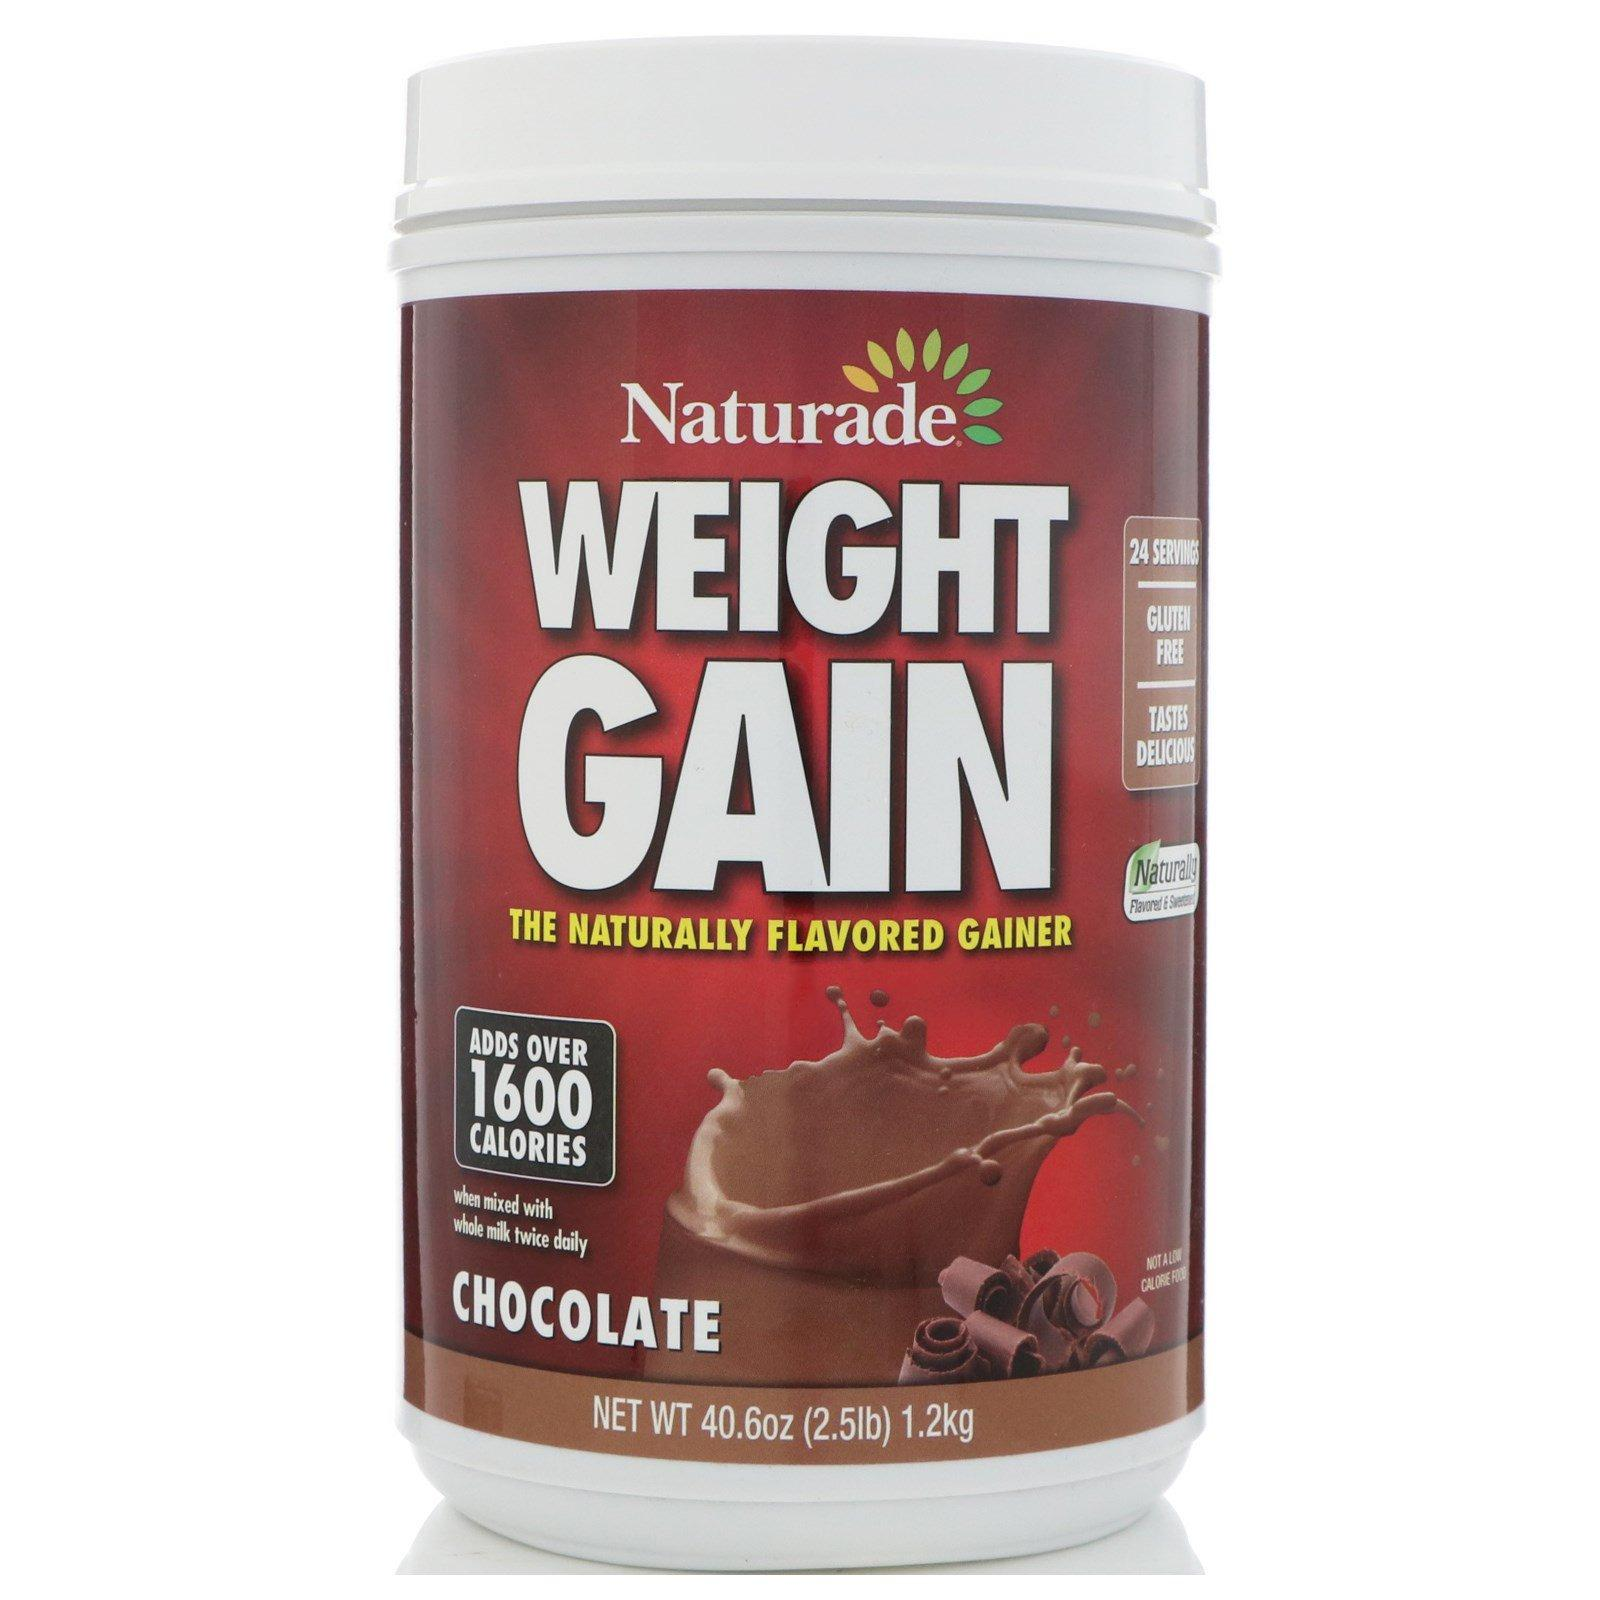 Naturade Weight Gain Chocolate 40 6 Oz 1 2 Kg Best Price